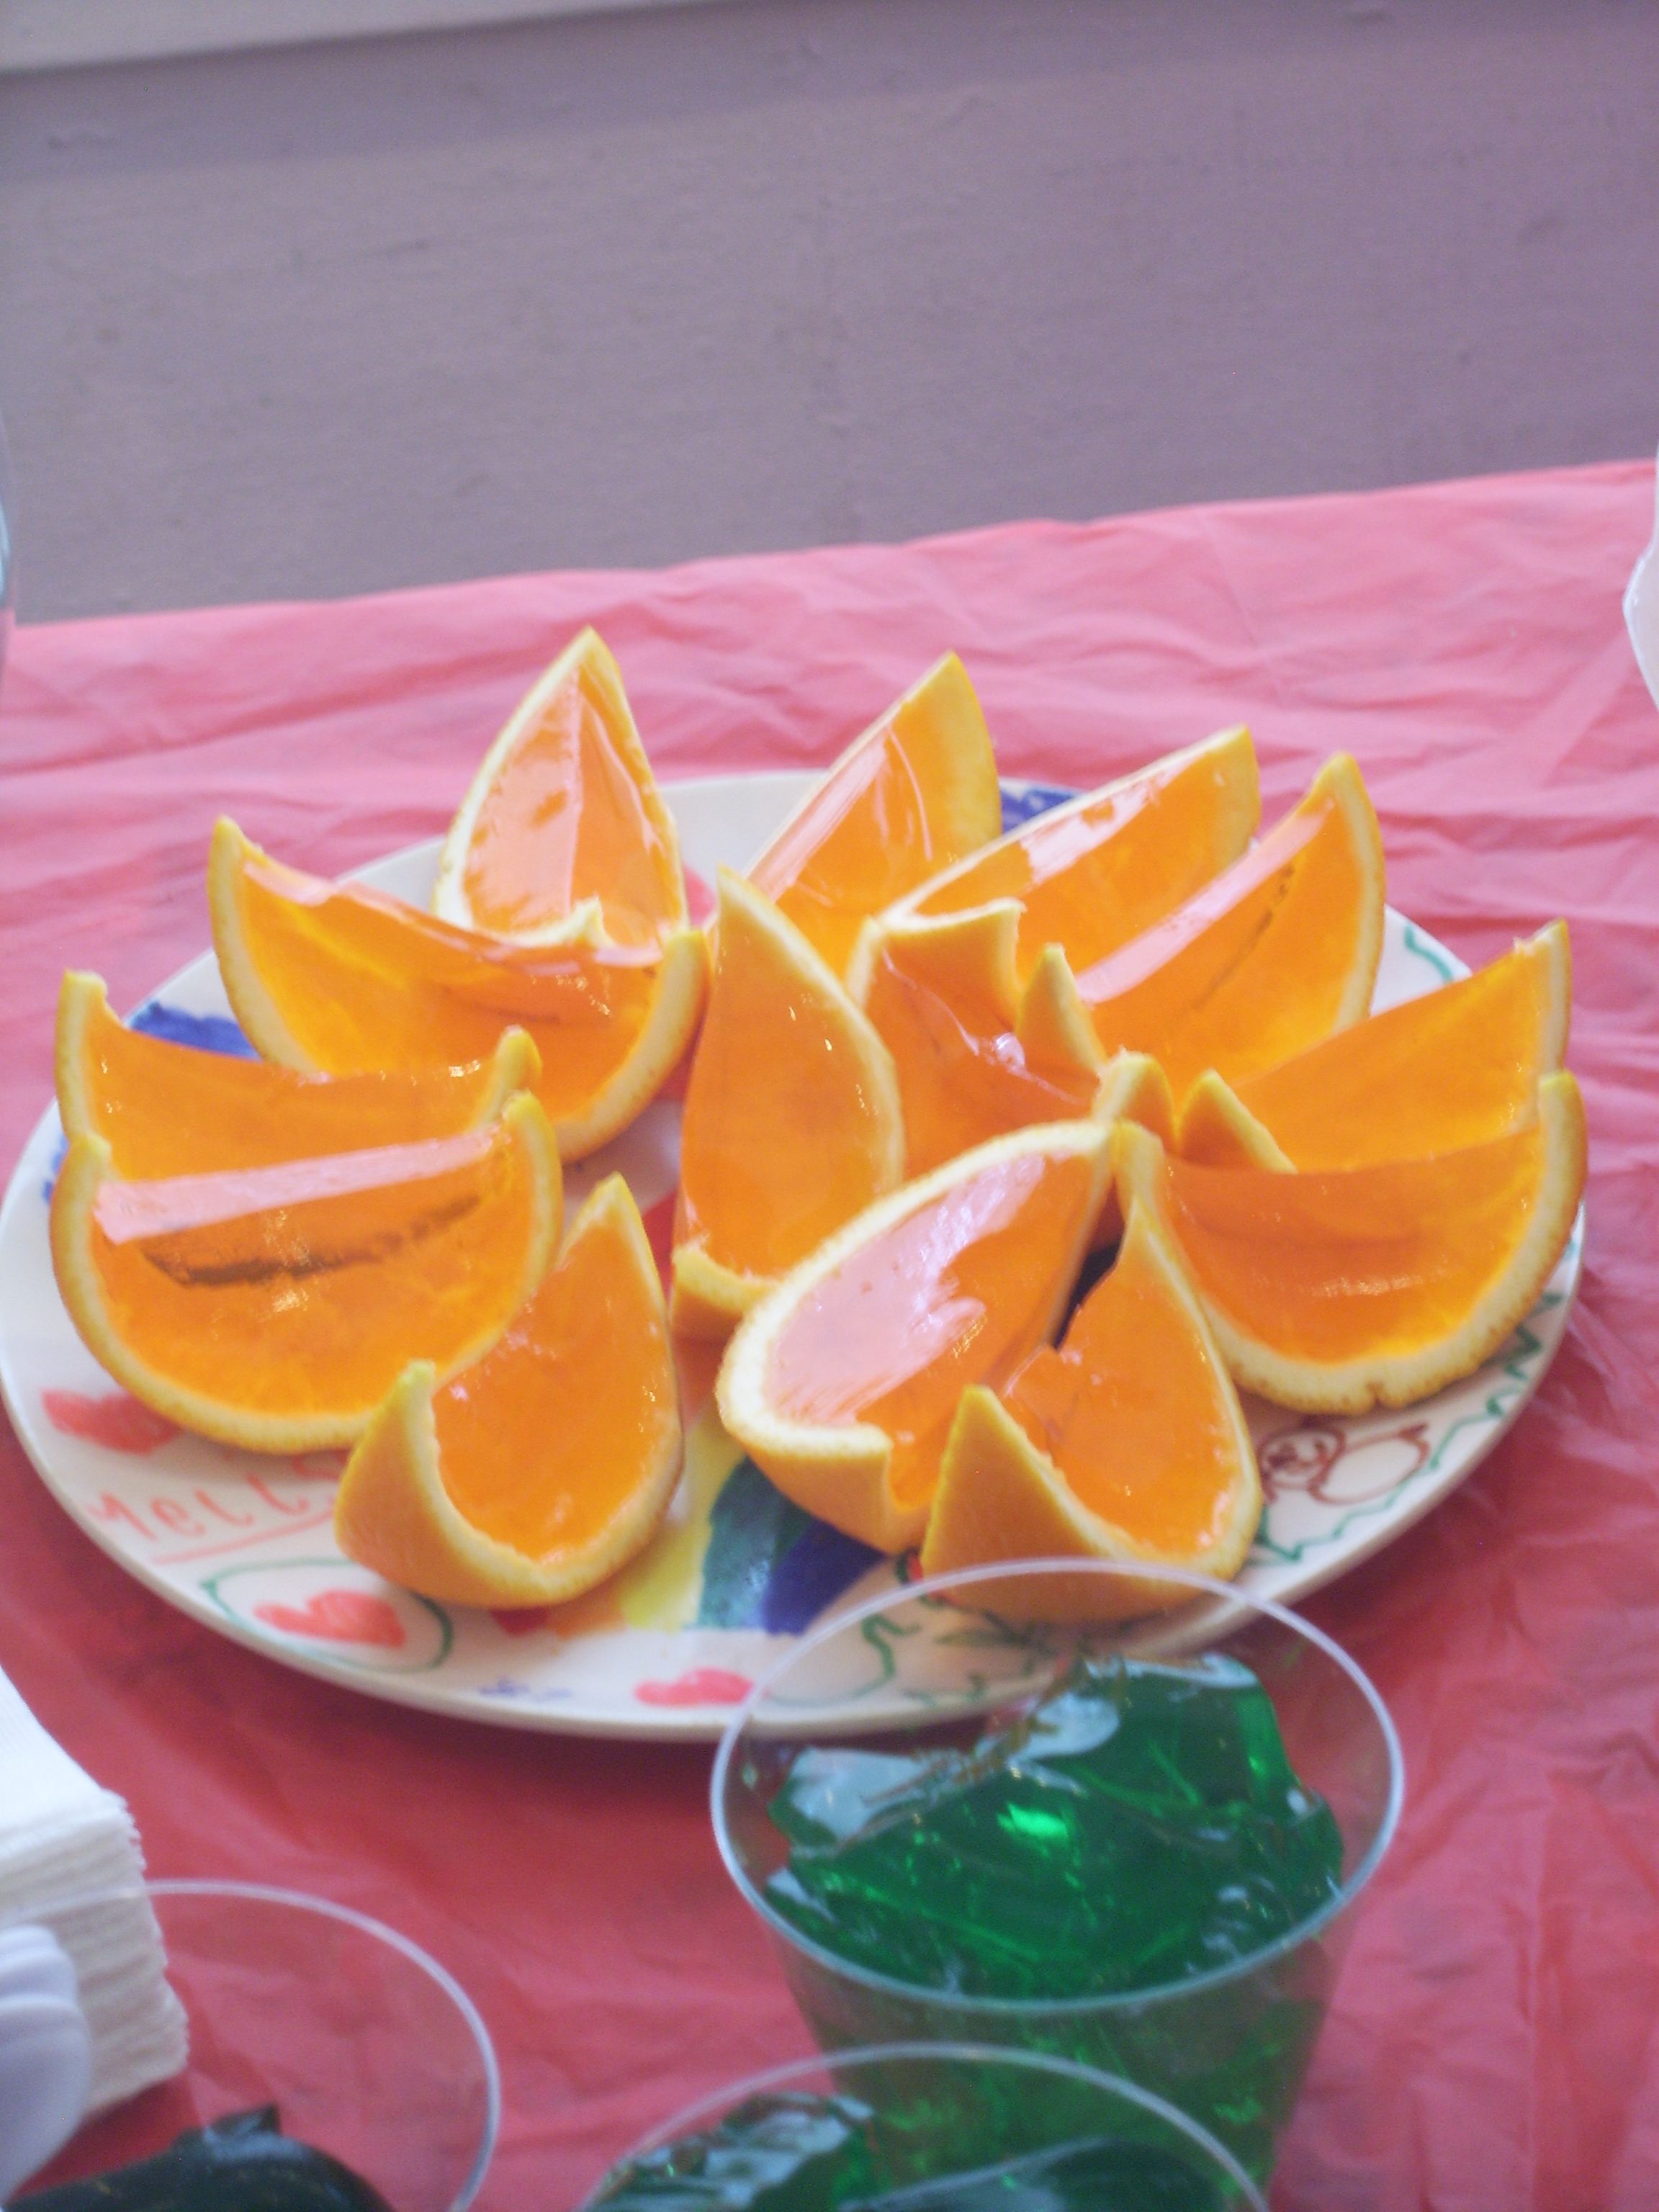 Hello, Jello! It's time again for the Maude Kerns Art Center's annual one-day Jello Art Show, happening on April 1